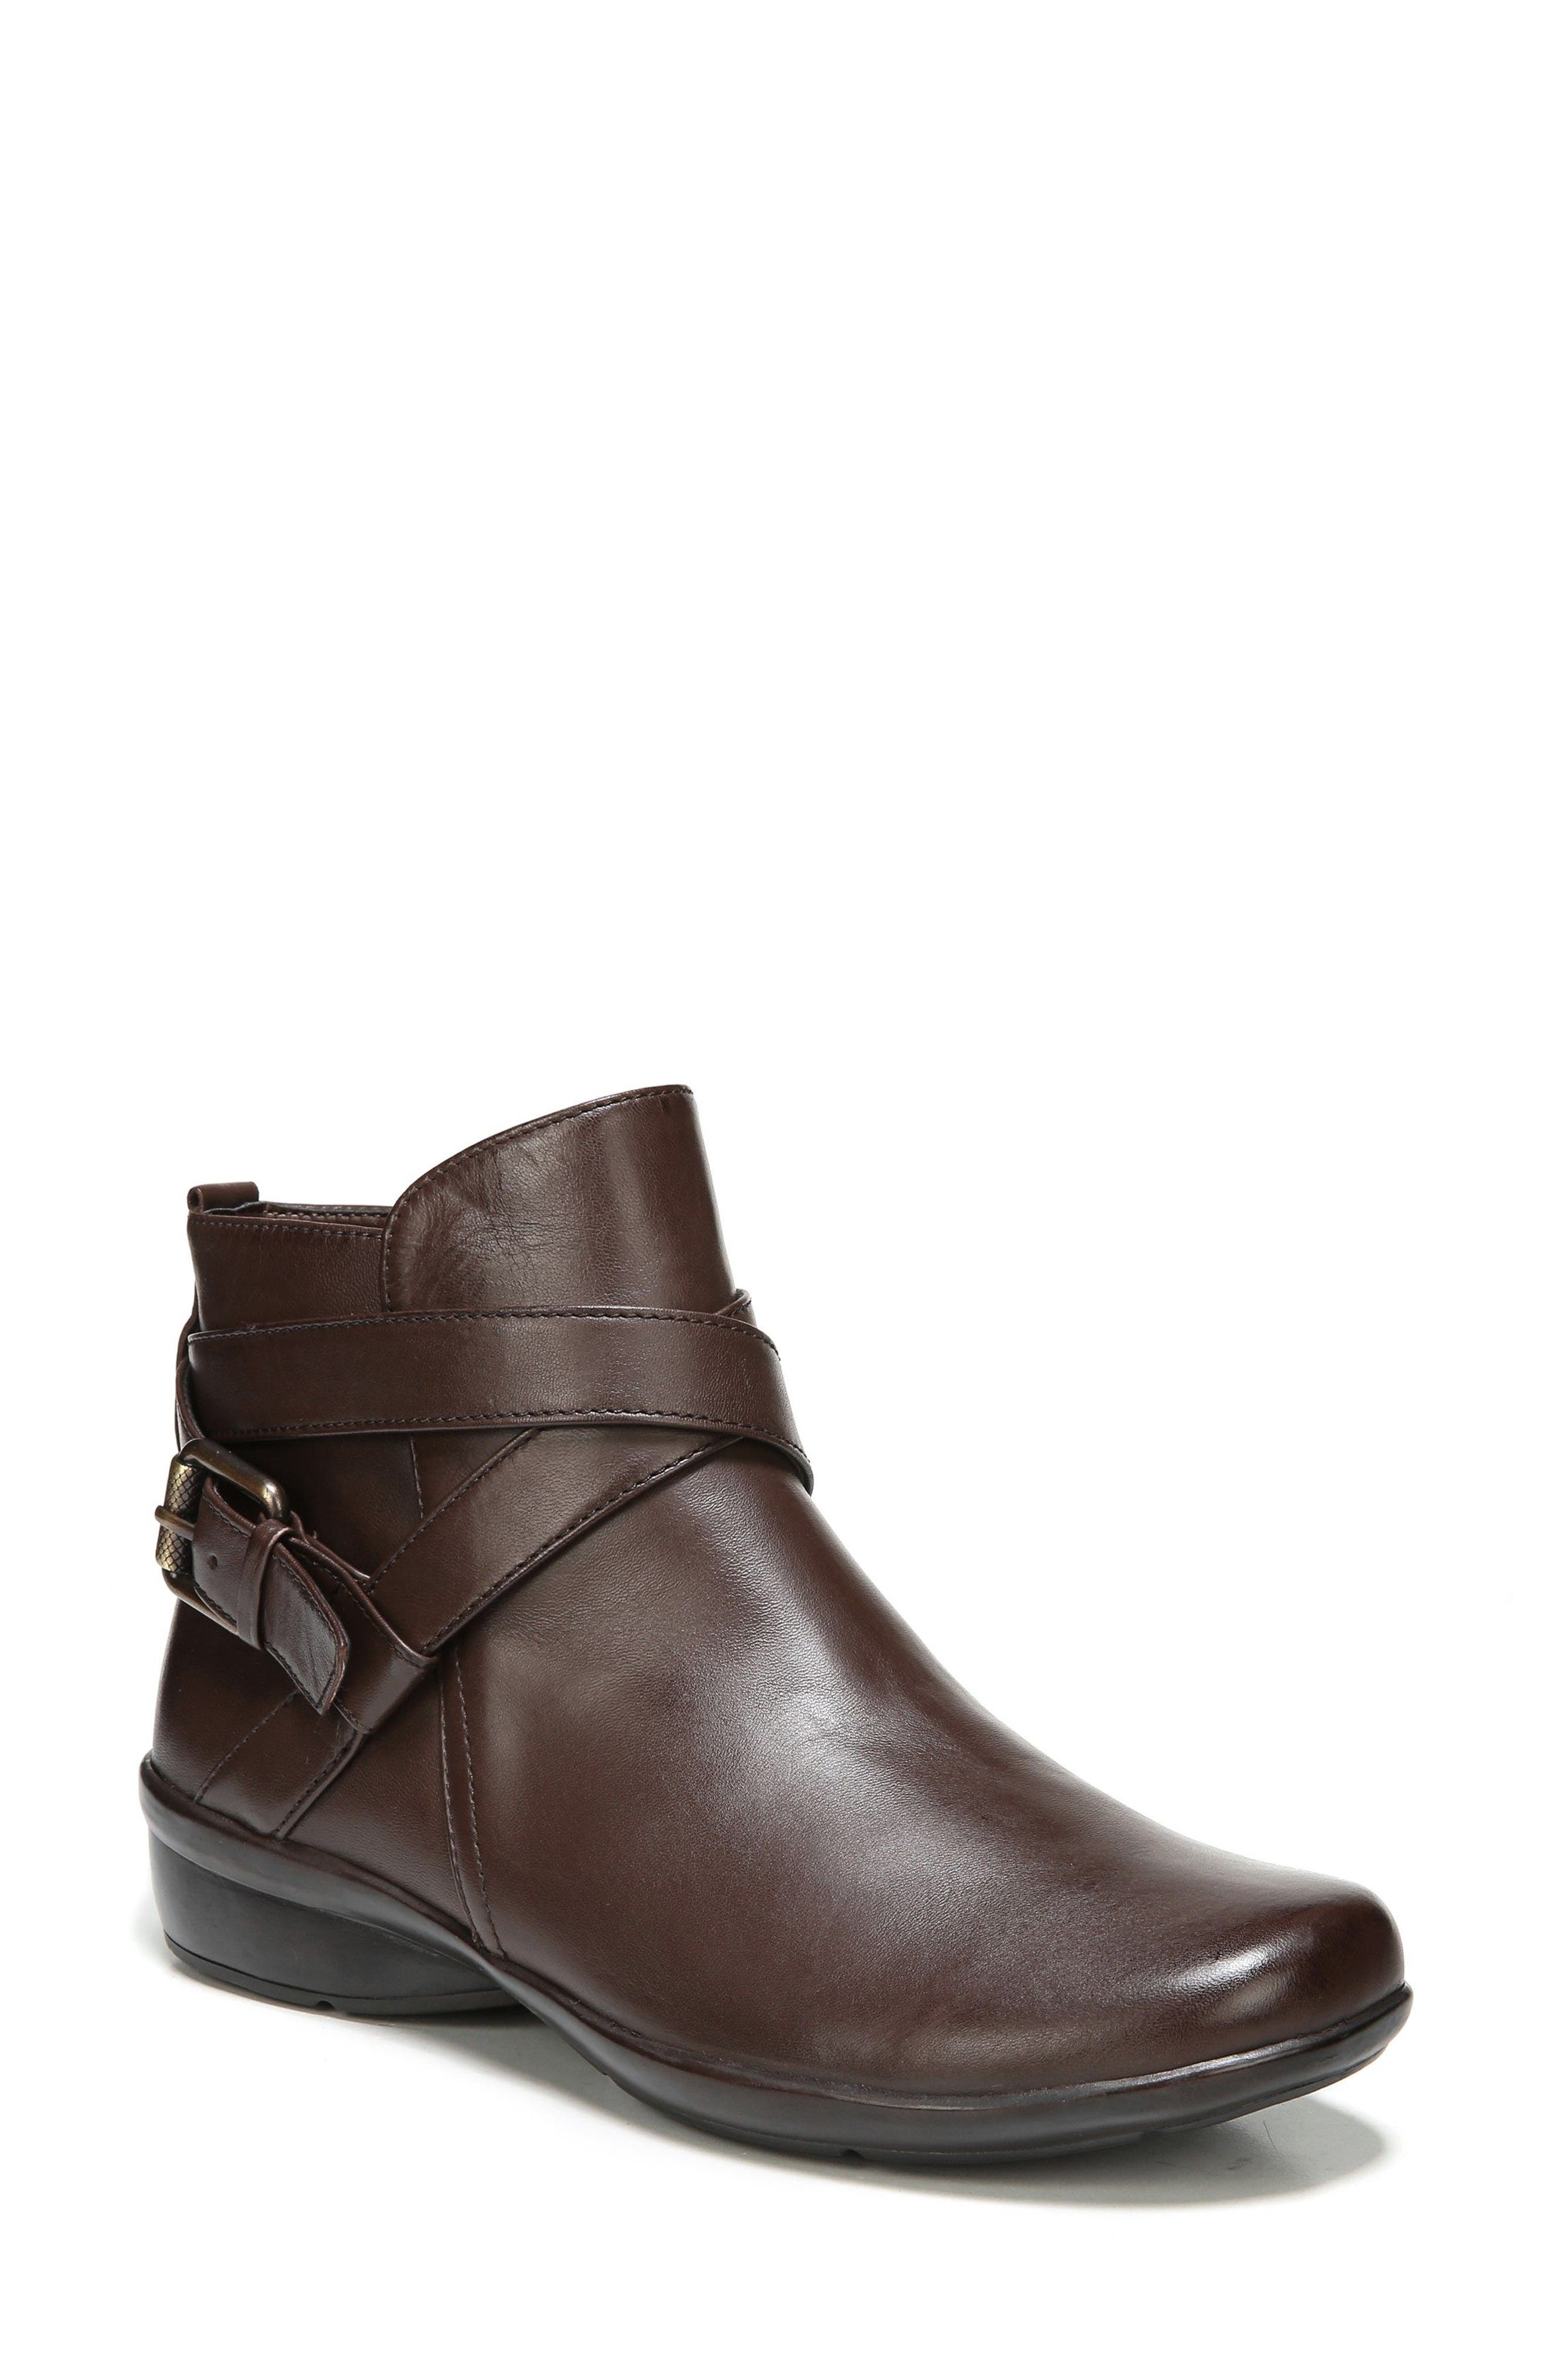 Cassandra Buckle Strap Bootie,                         Main,                         color, Bridal Brown Leather